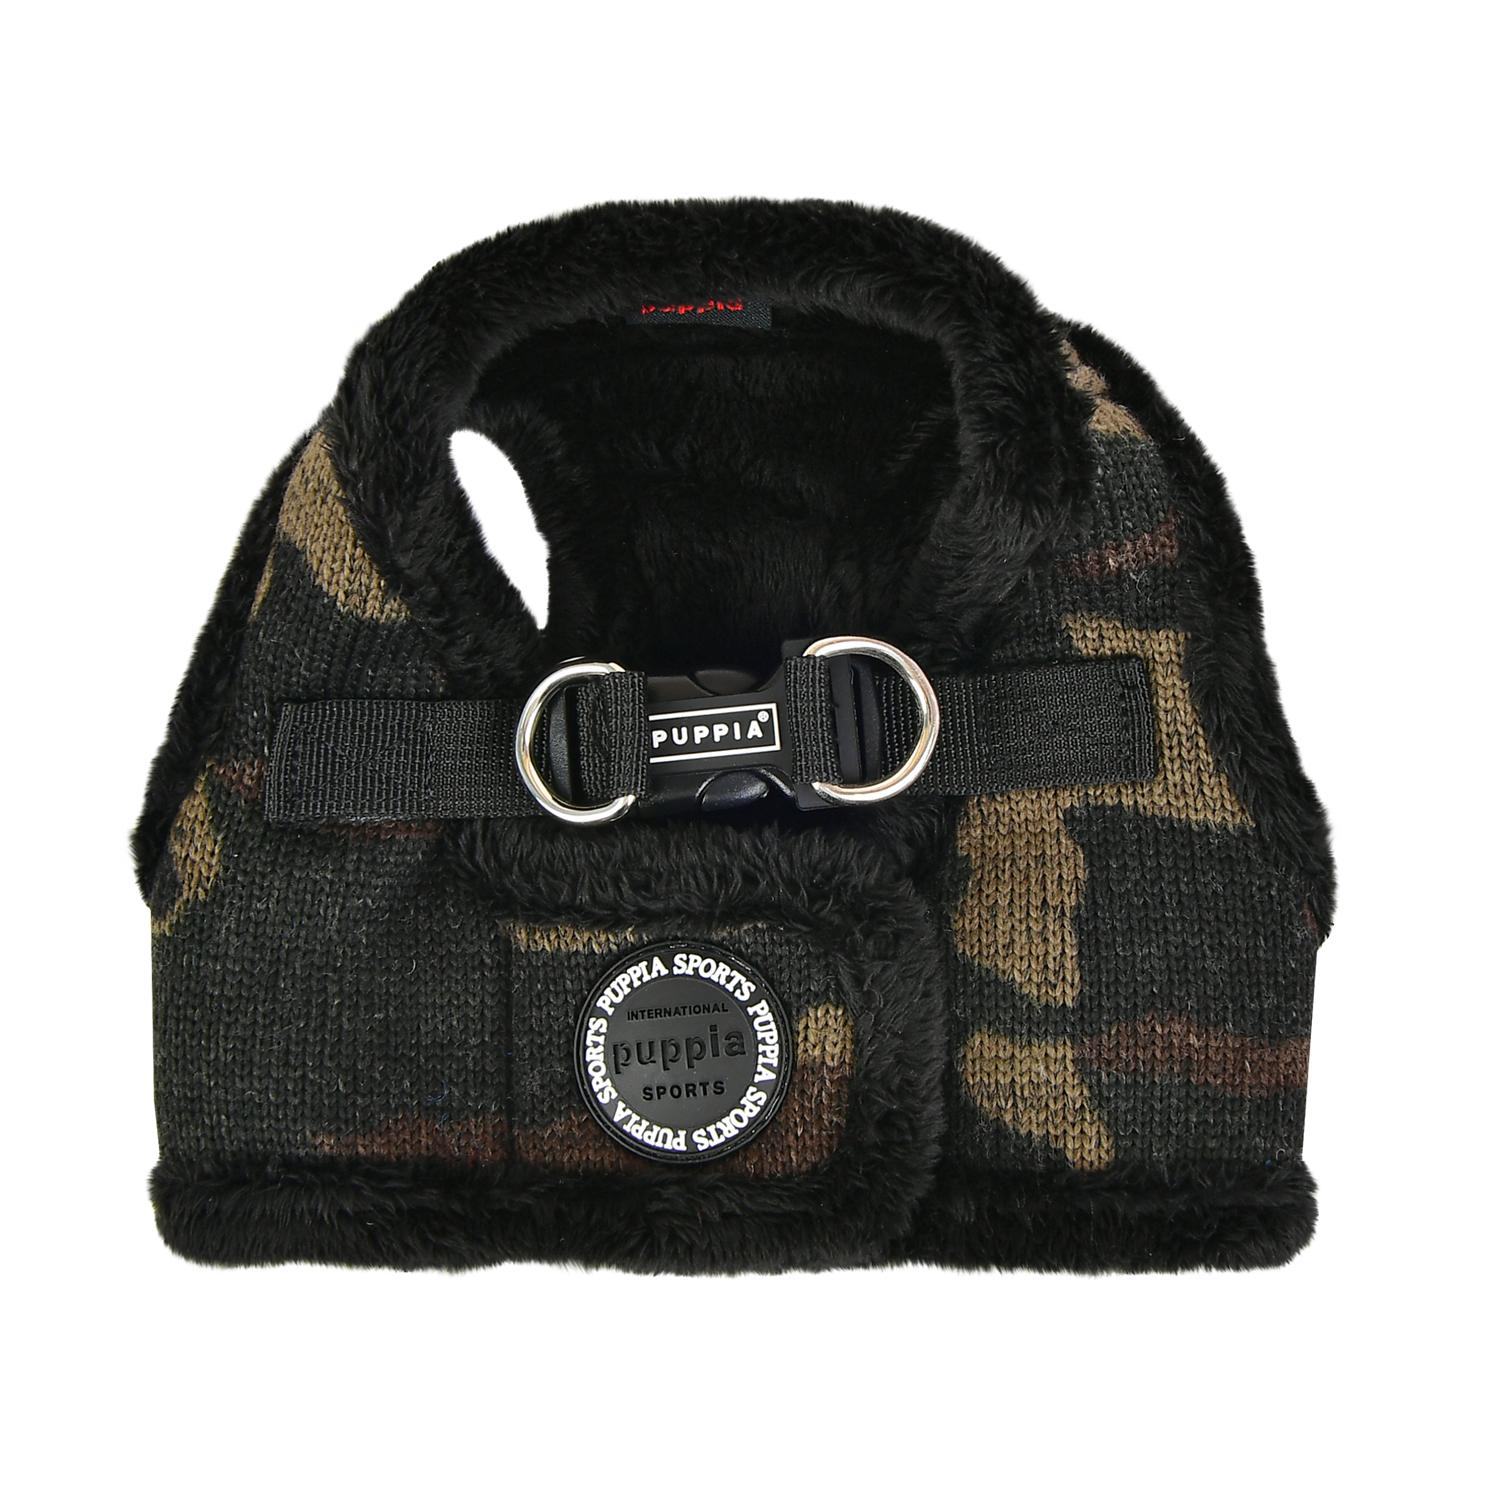 Colonel Vest Dog Harness by Puppia - Camo